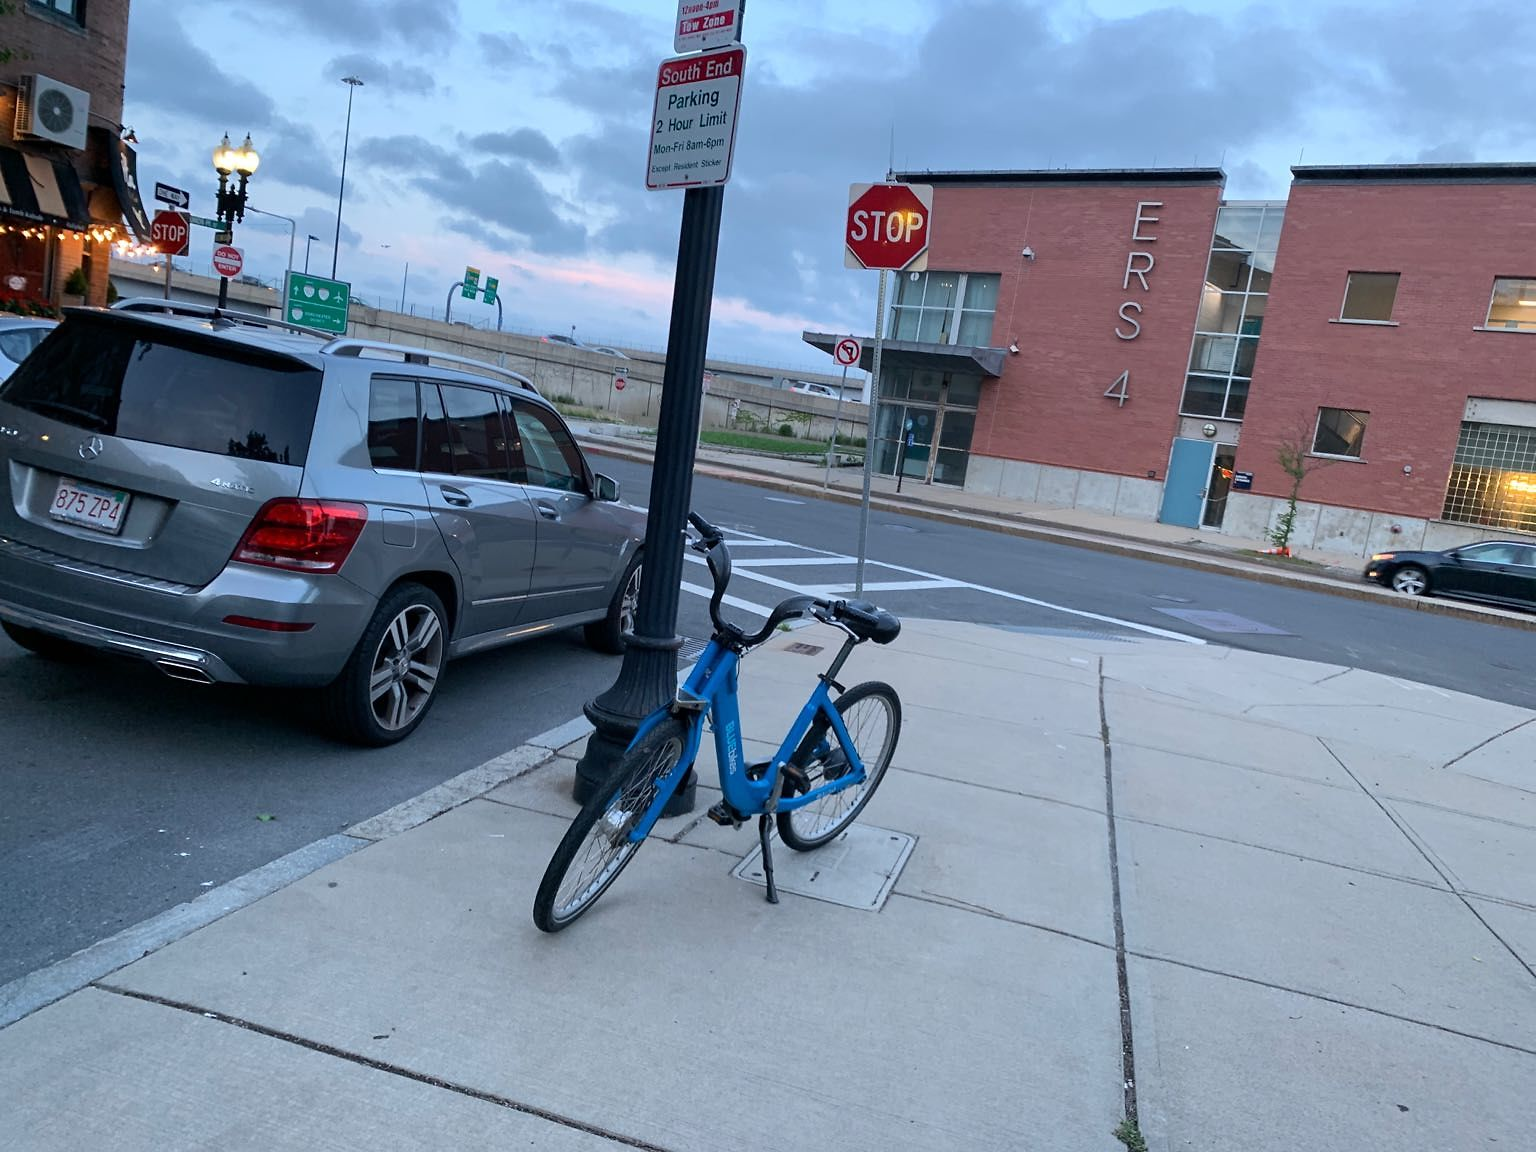 Blue bike number 40760 found abandoned in alley. Moved to more visible place for retrieval.